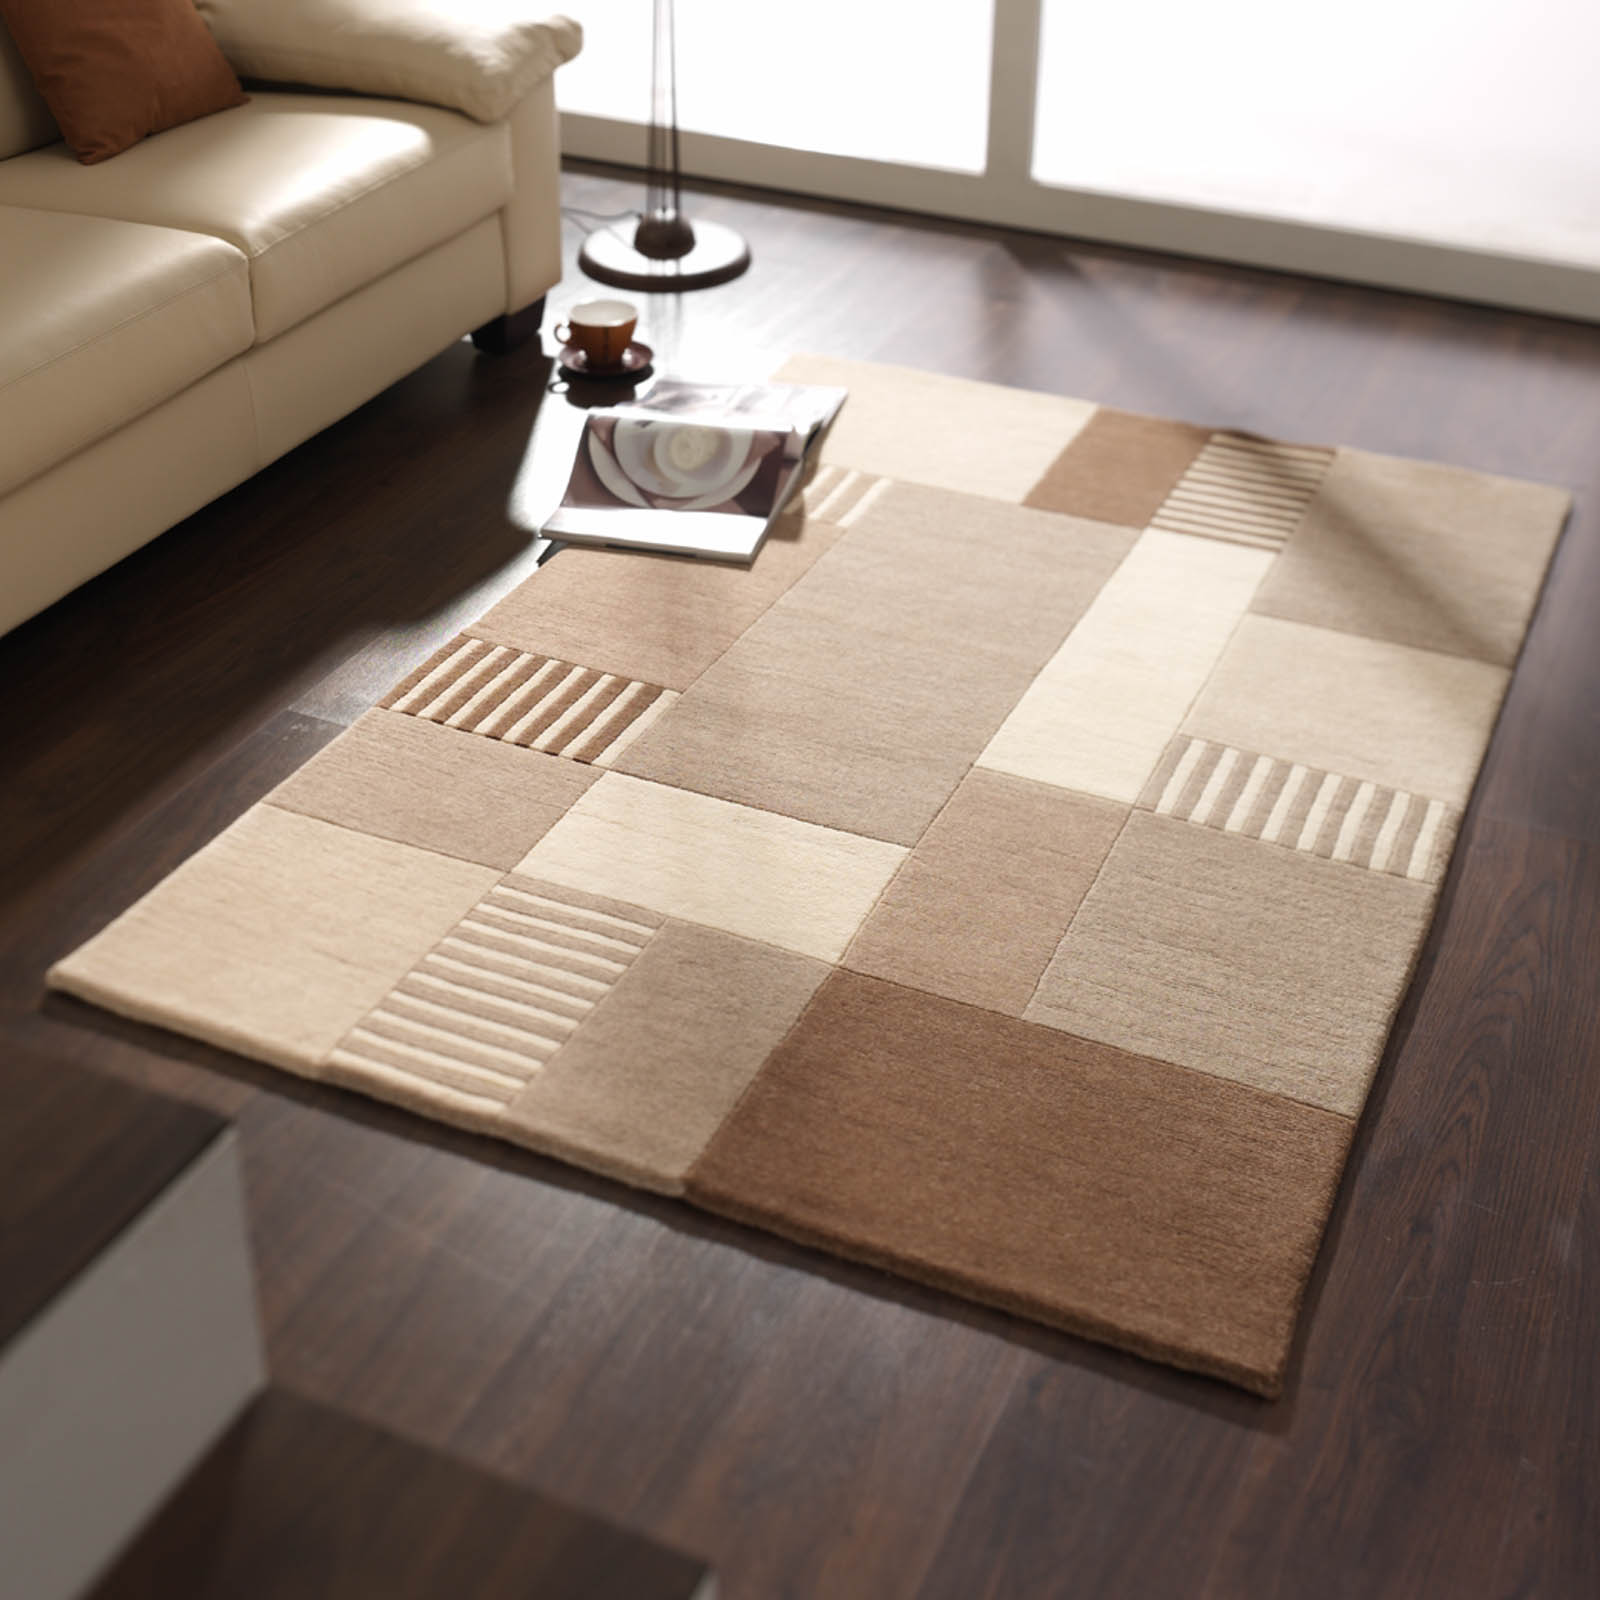 Impression Rugs 605 in Beige Brown